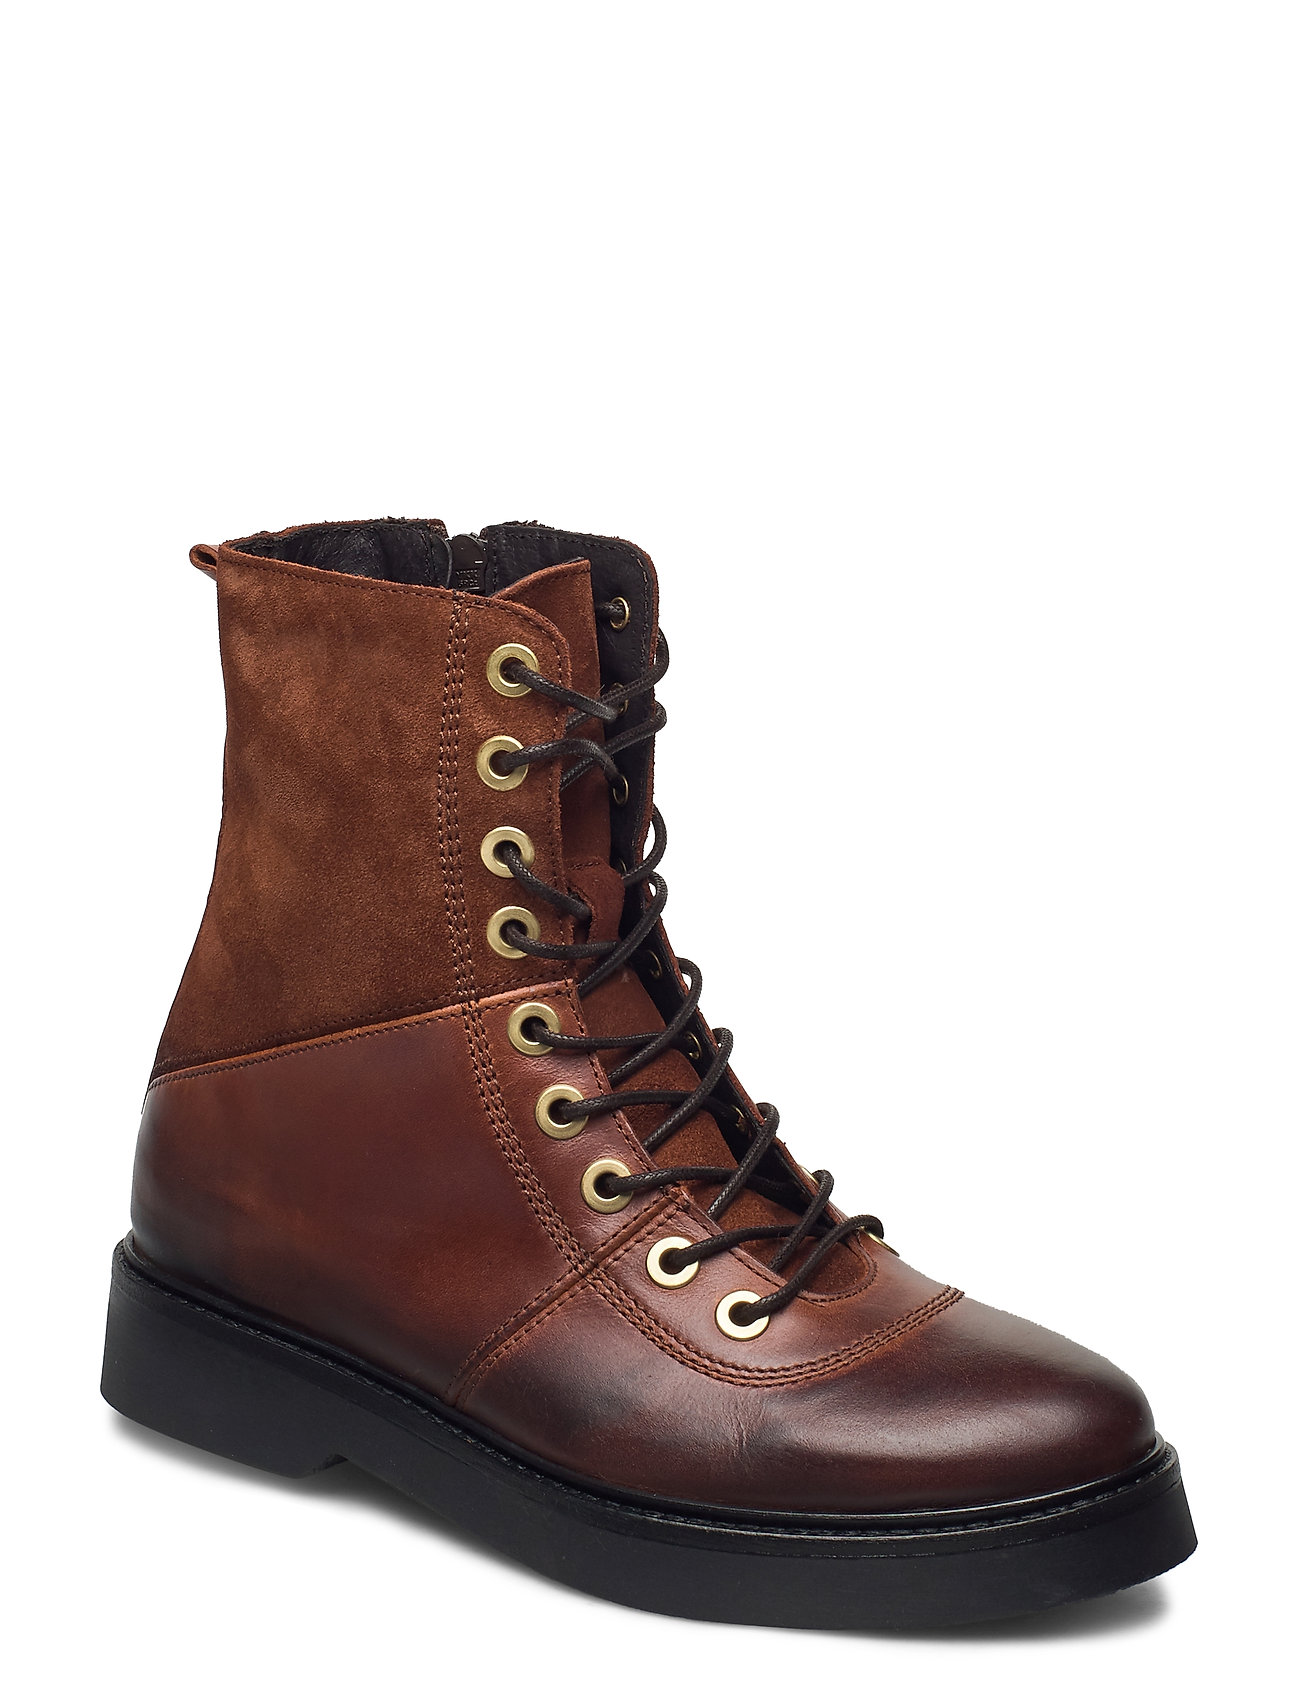 Image of Stb-Billie High Lace L Shoes Boots Ankle Boots Ankle Boot - Flat Brun Shoe The Bear (3453847417)